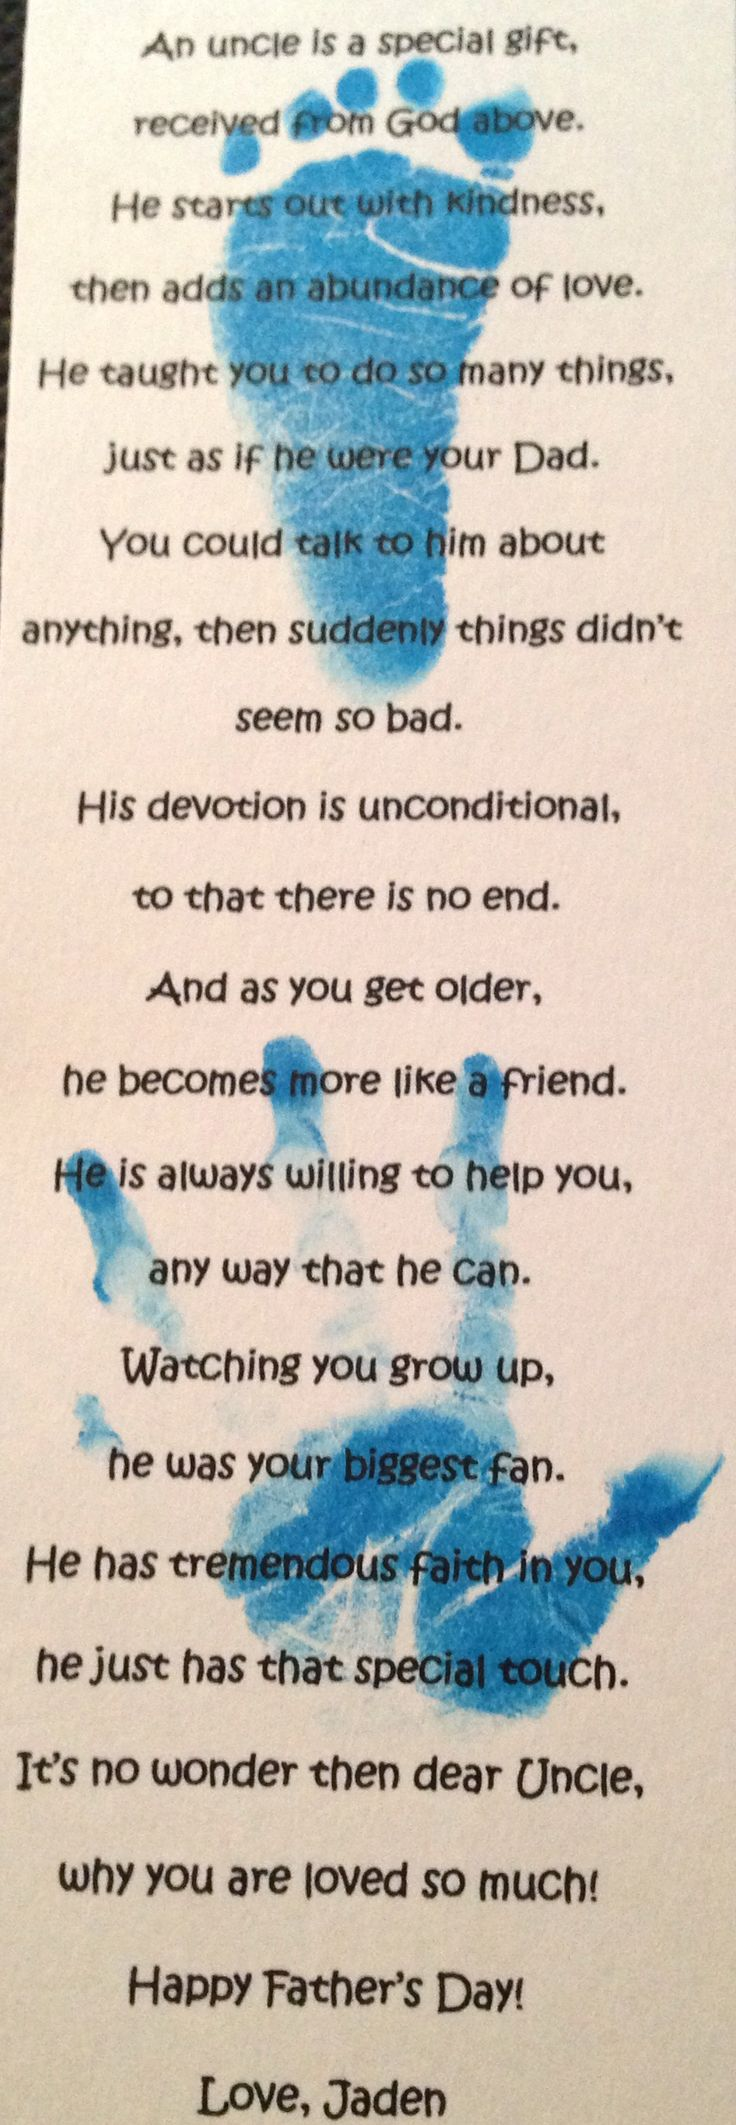 Fathers Day Uncle Poem for Jaden's Amazing uncles